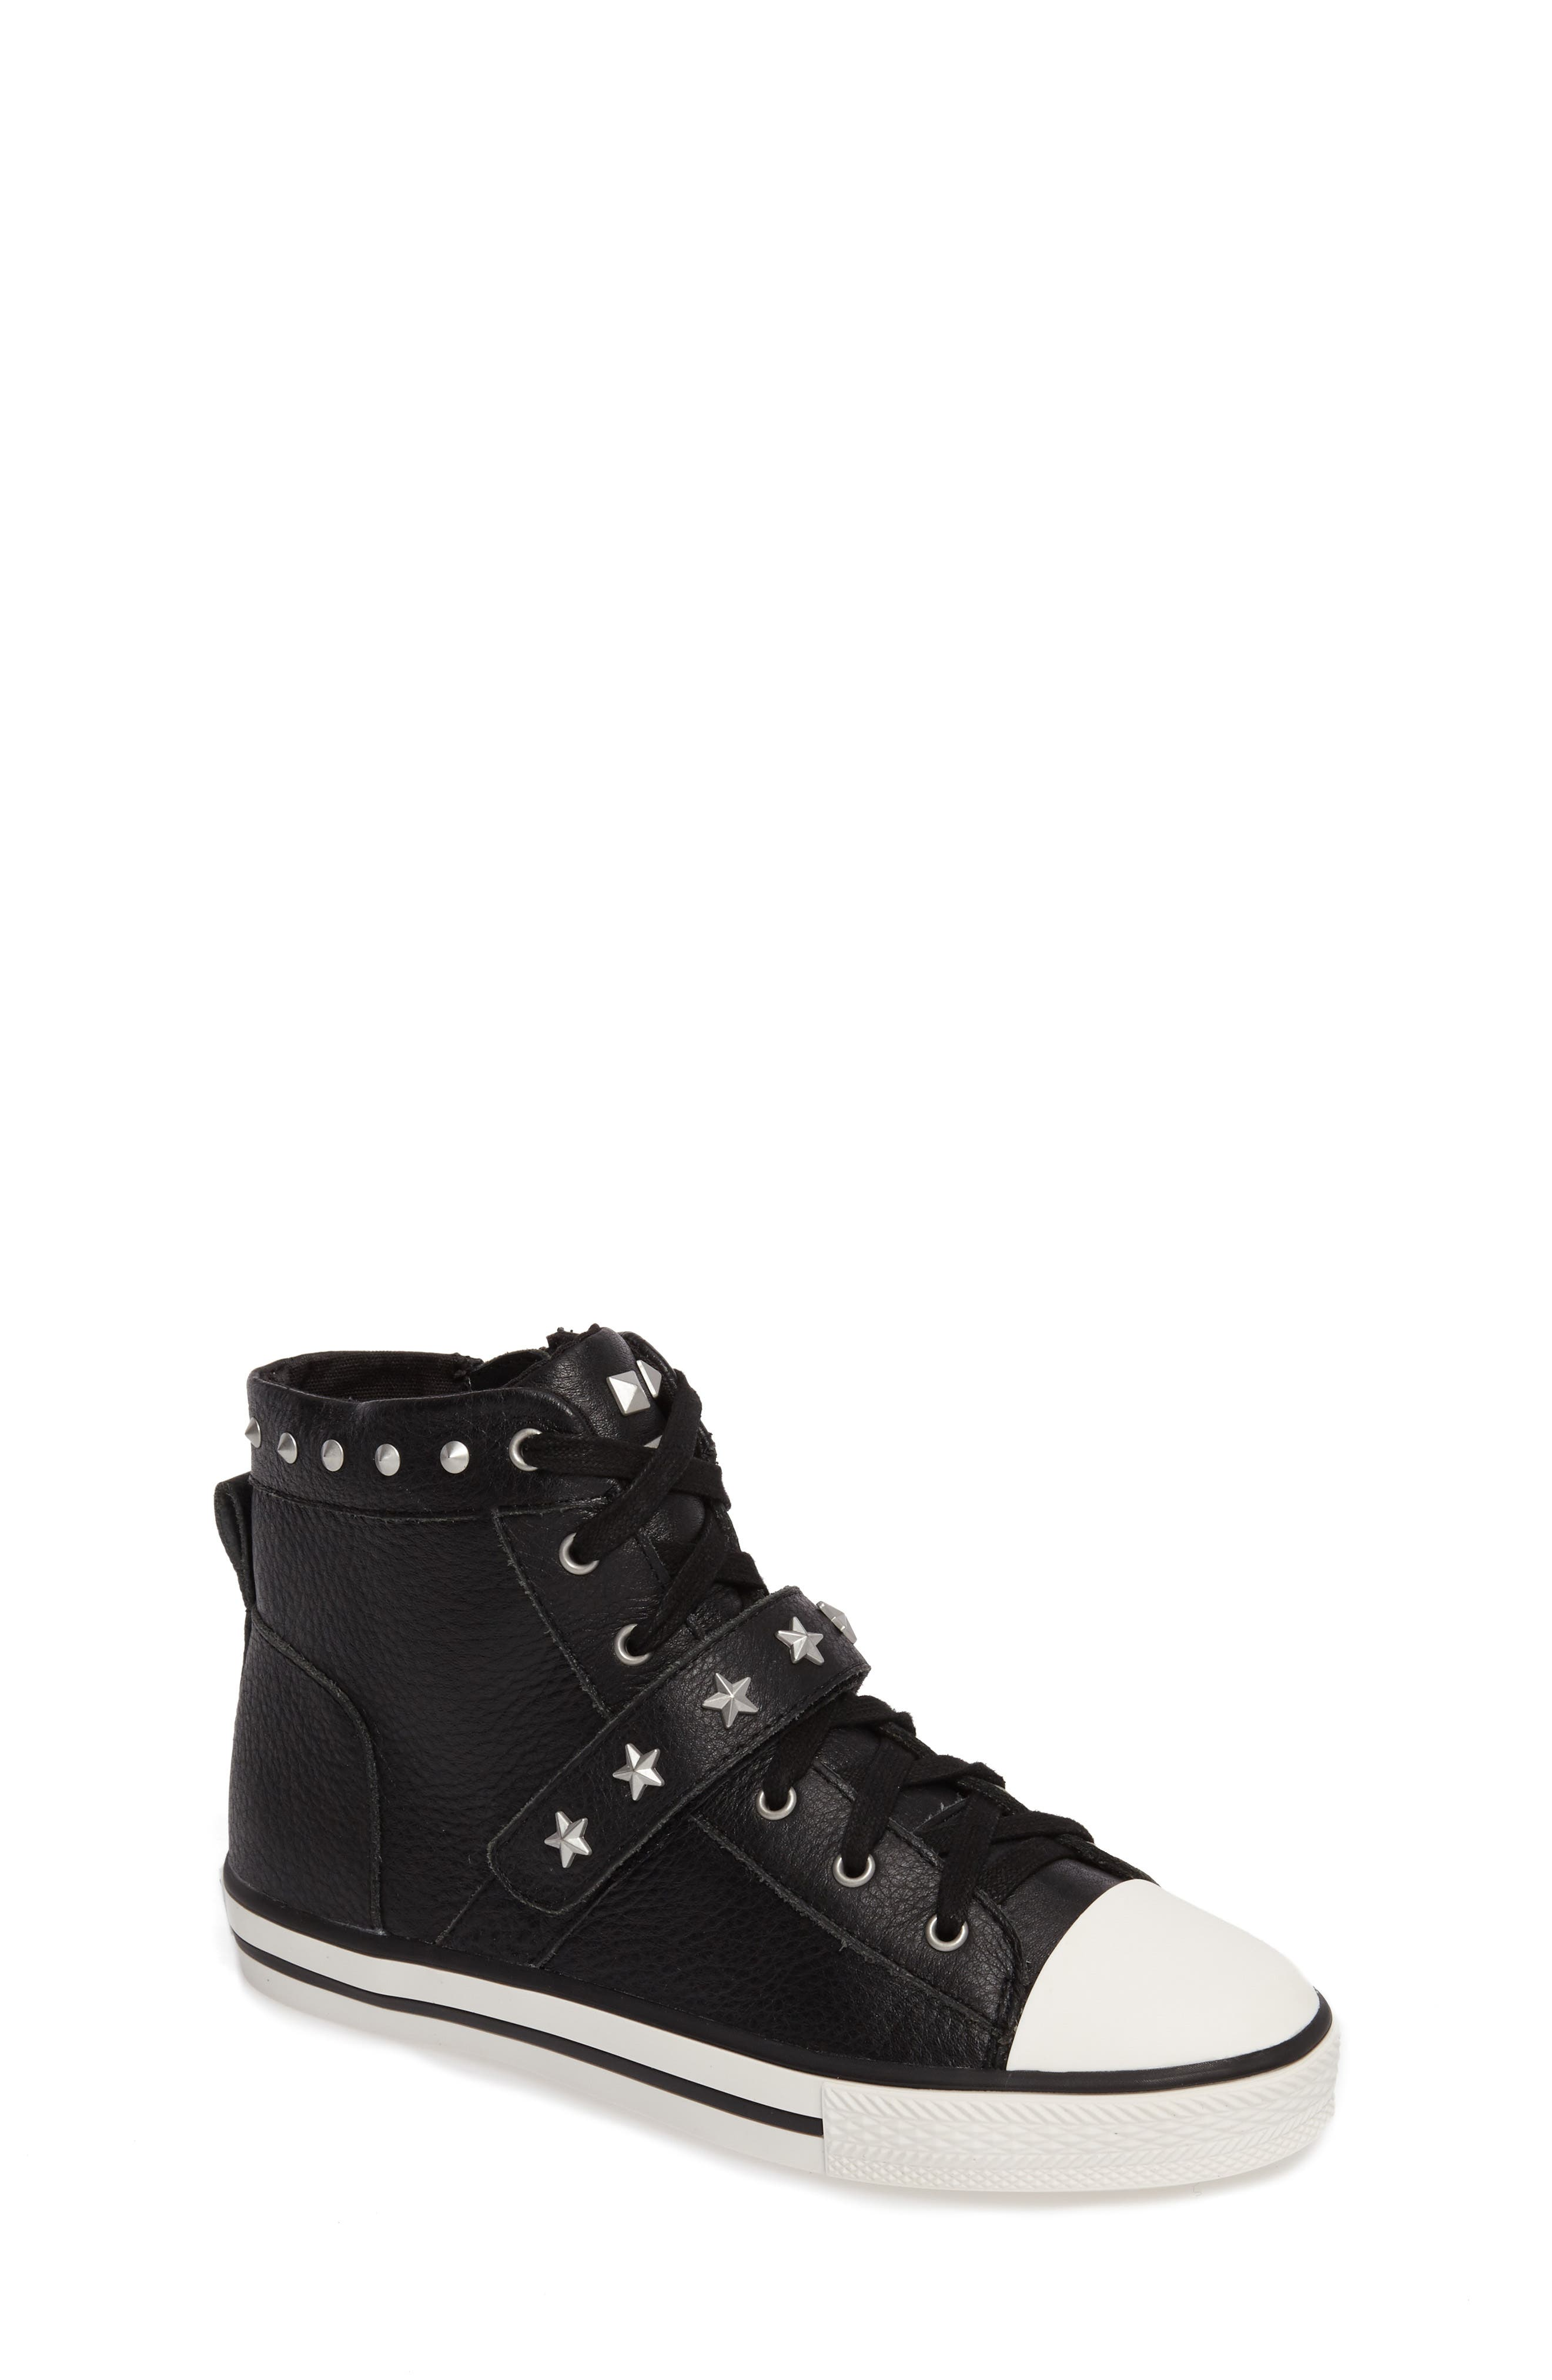 Vava Curve Studded High Top Sneaker,                         Main,                         color, Black Leather